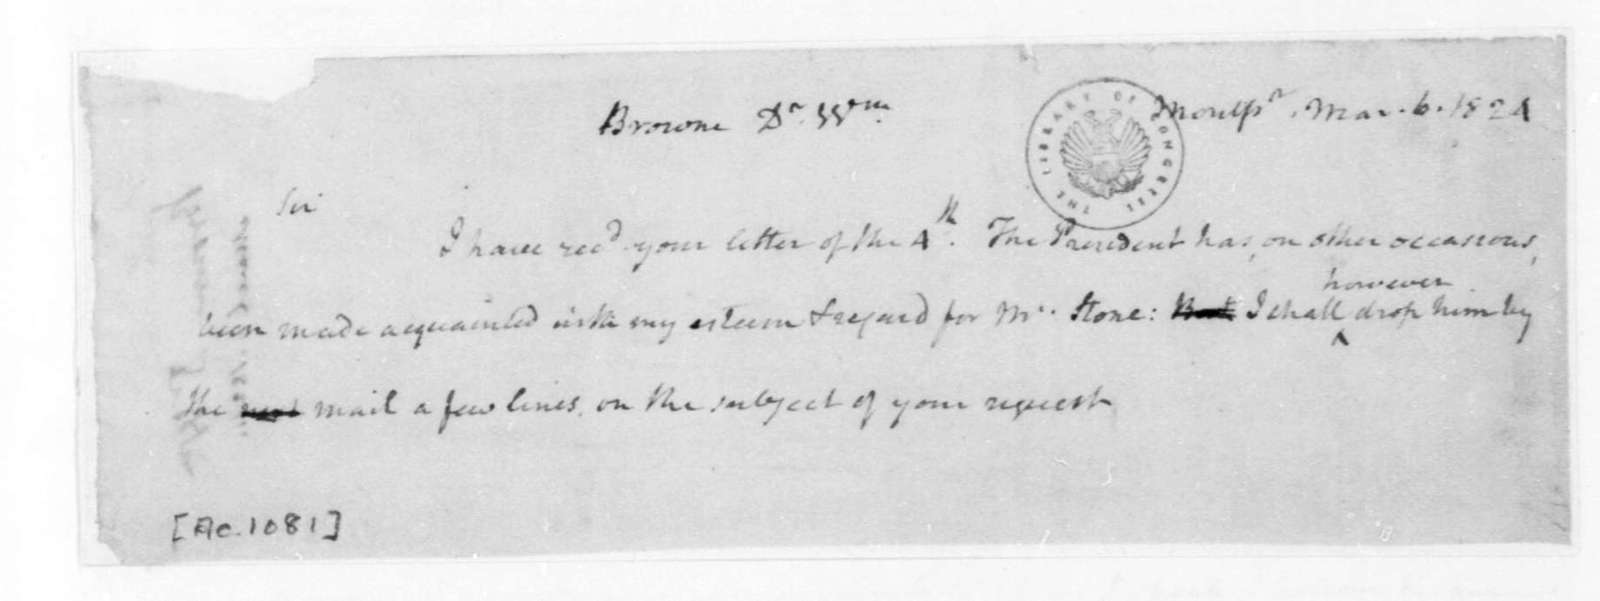 James Madison to William Browne, March 6, 1824.